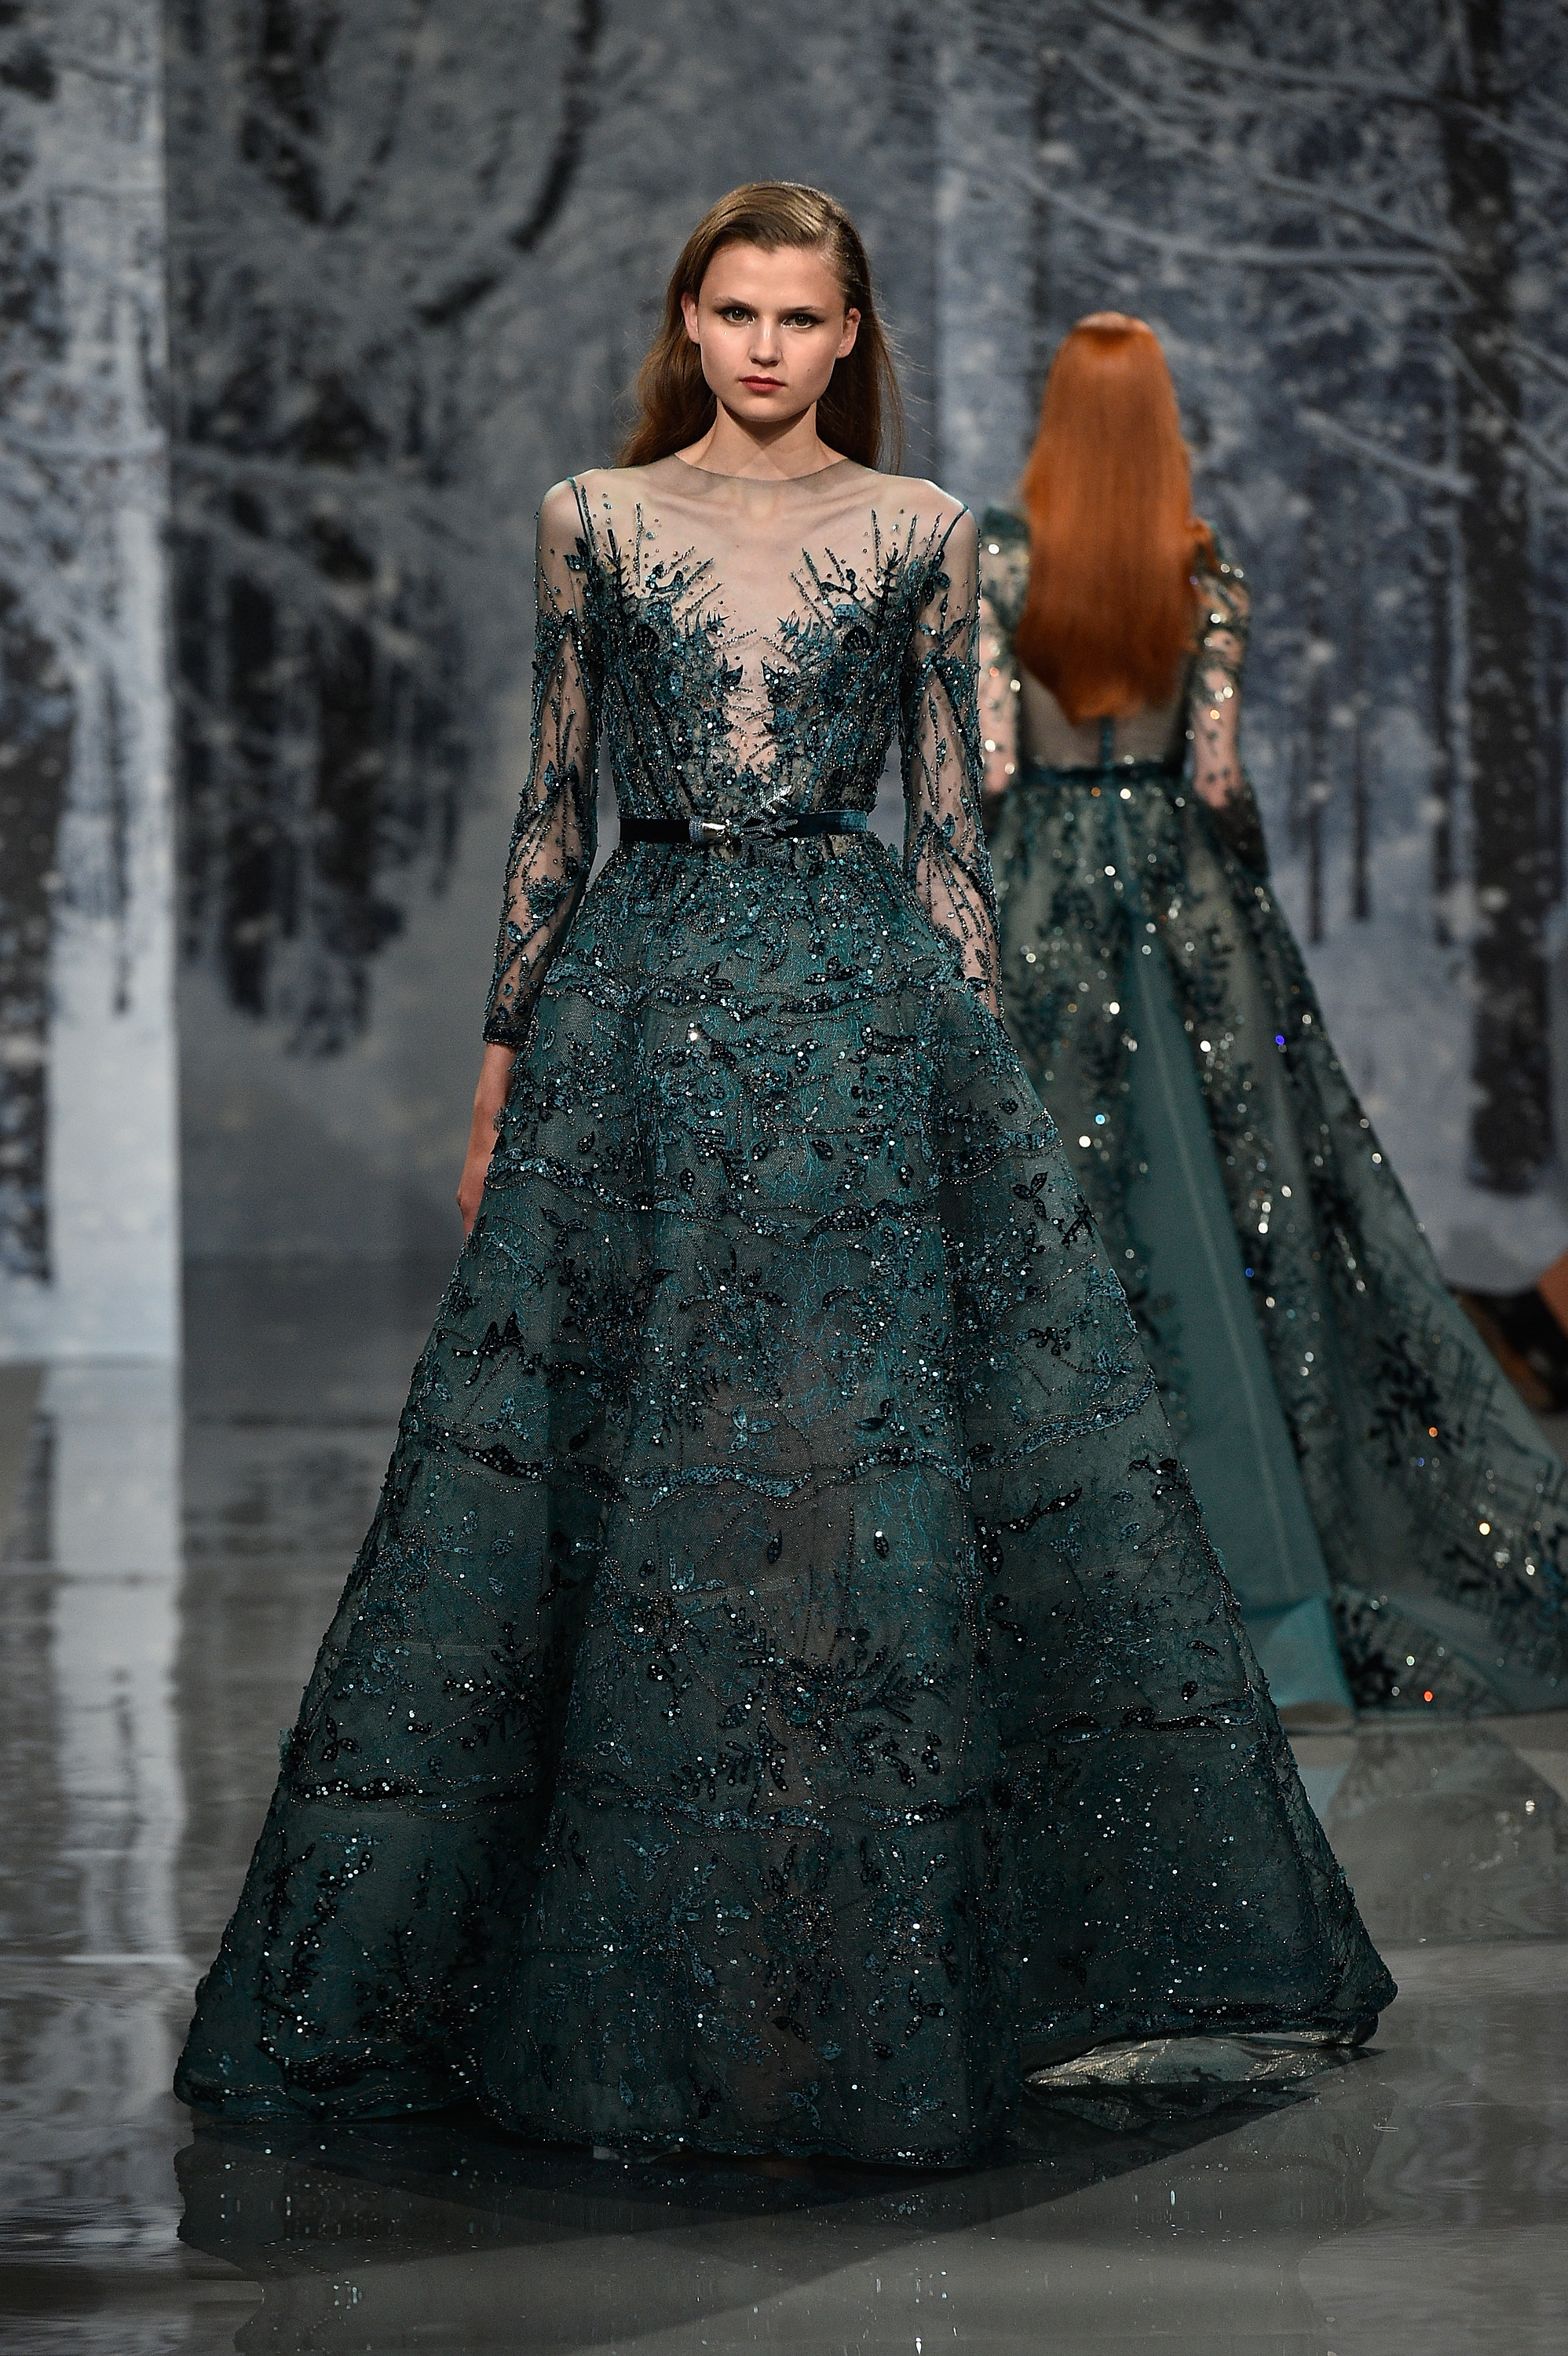 A model walks the runway during the Maison Ziad Nakad Haute Couture Fall/Winter 2017-2018 show as part of Haute Couture Paris Fashion Week on July 5, 2017 in Paris, France.